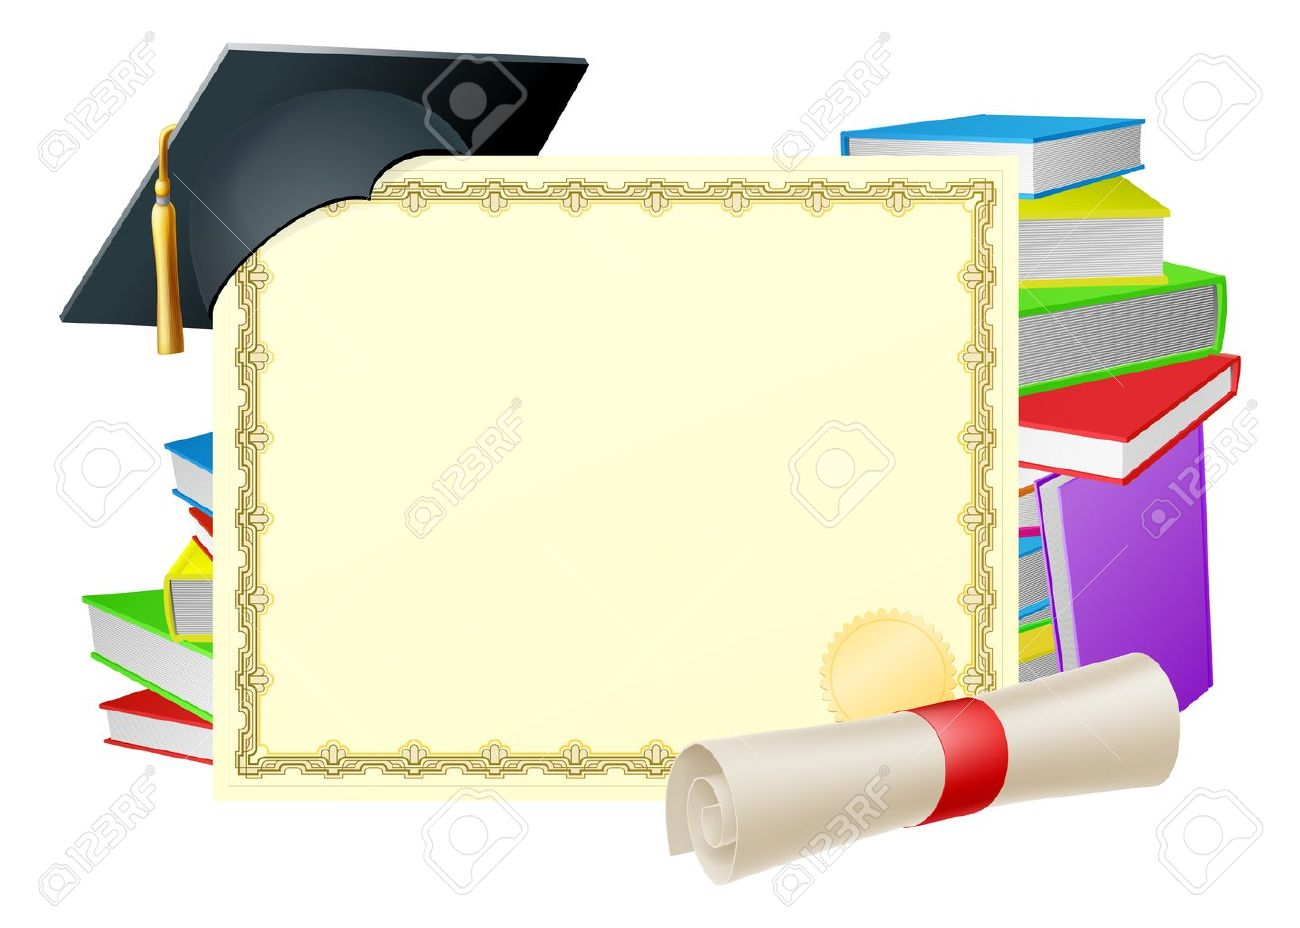 Graduation background clipart 9 » Clipart Station.